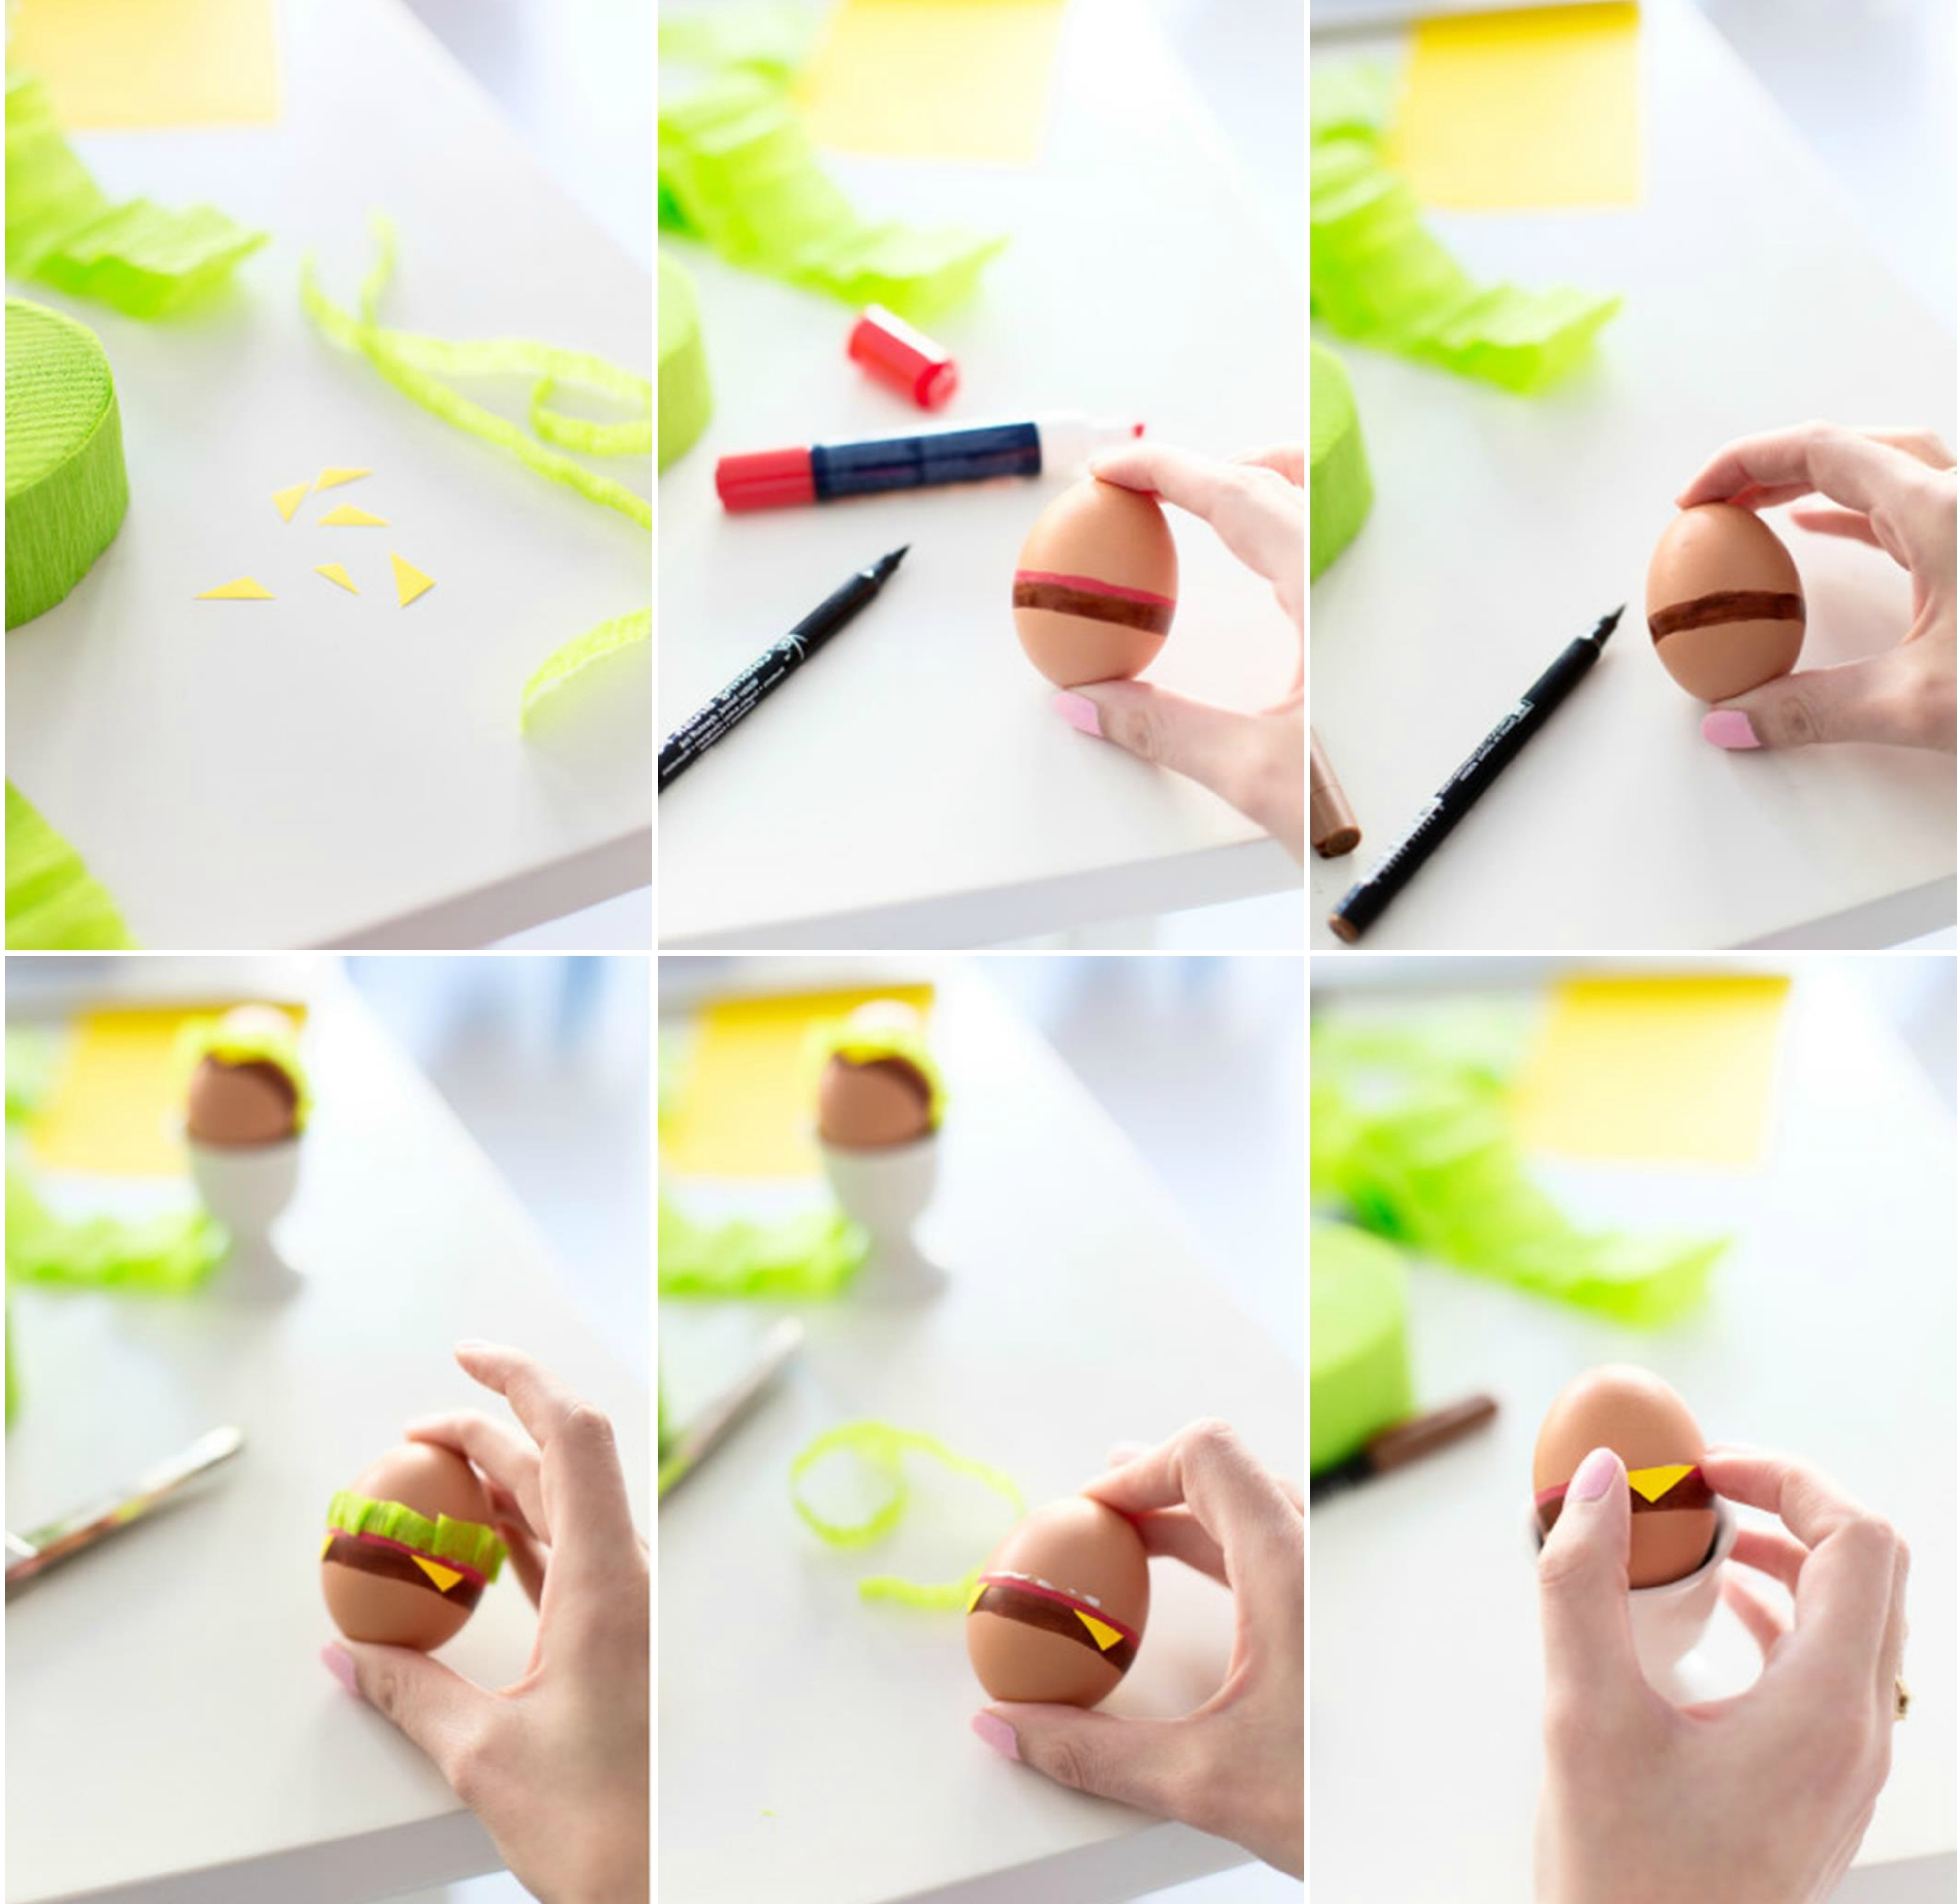 step by step photo tutorial for dying easter eggs, explaining how to paint an egg with markers, and decorate it with pieces of green and yellow paper, to make it look like a hamburger